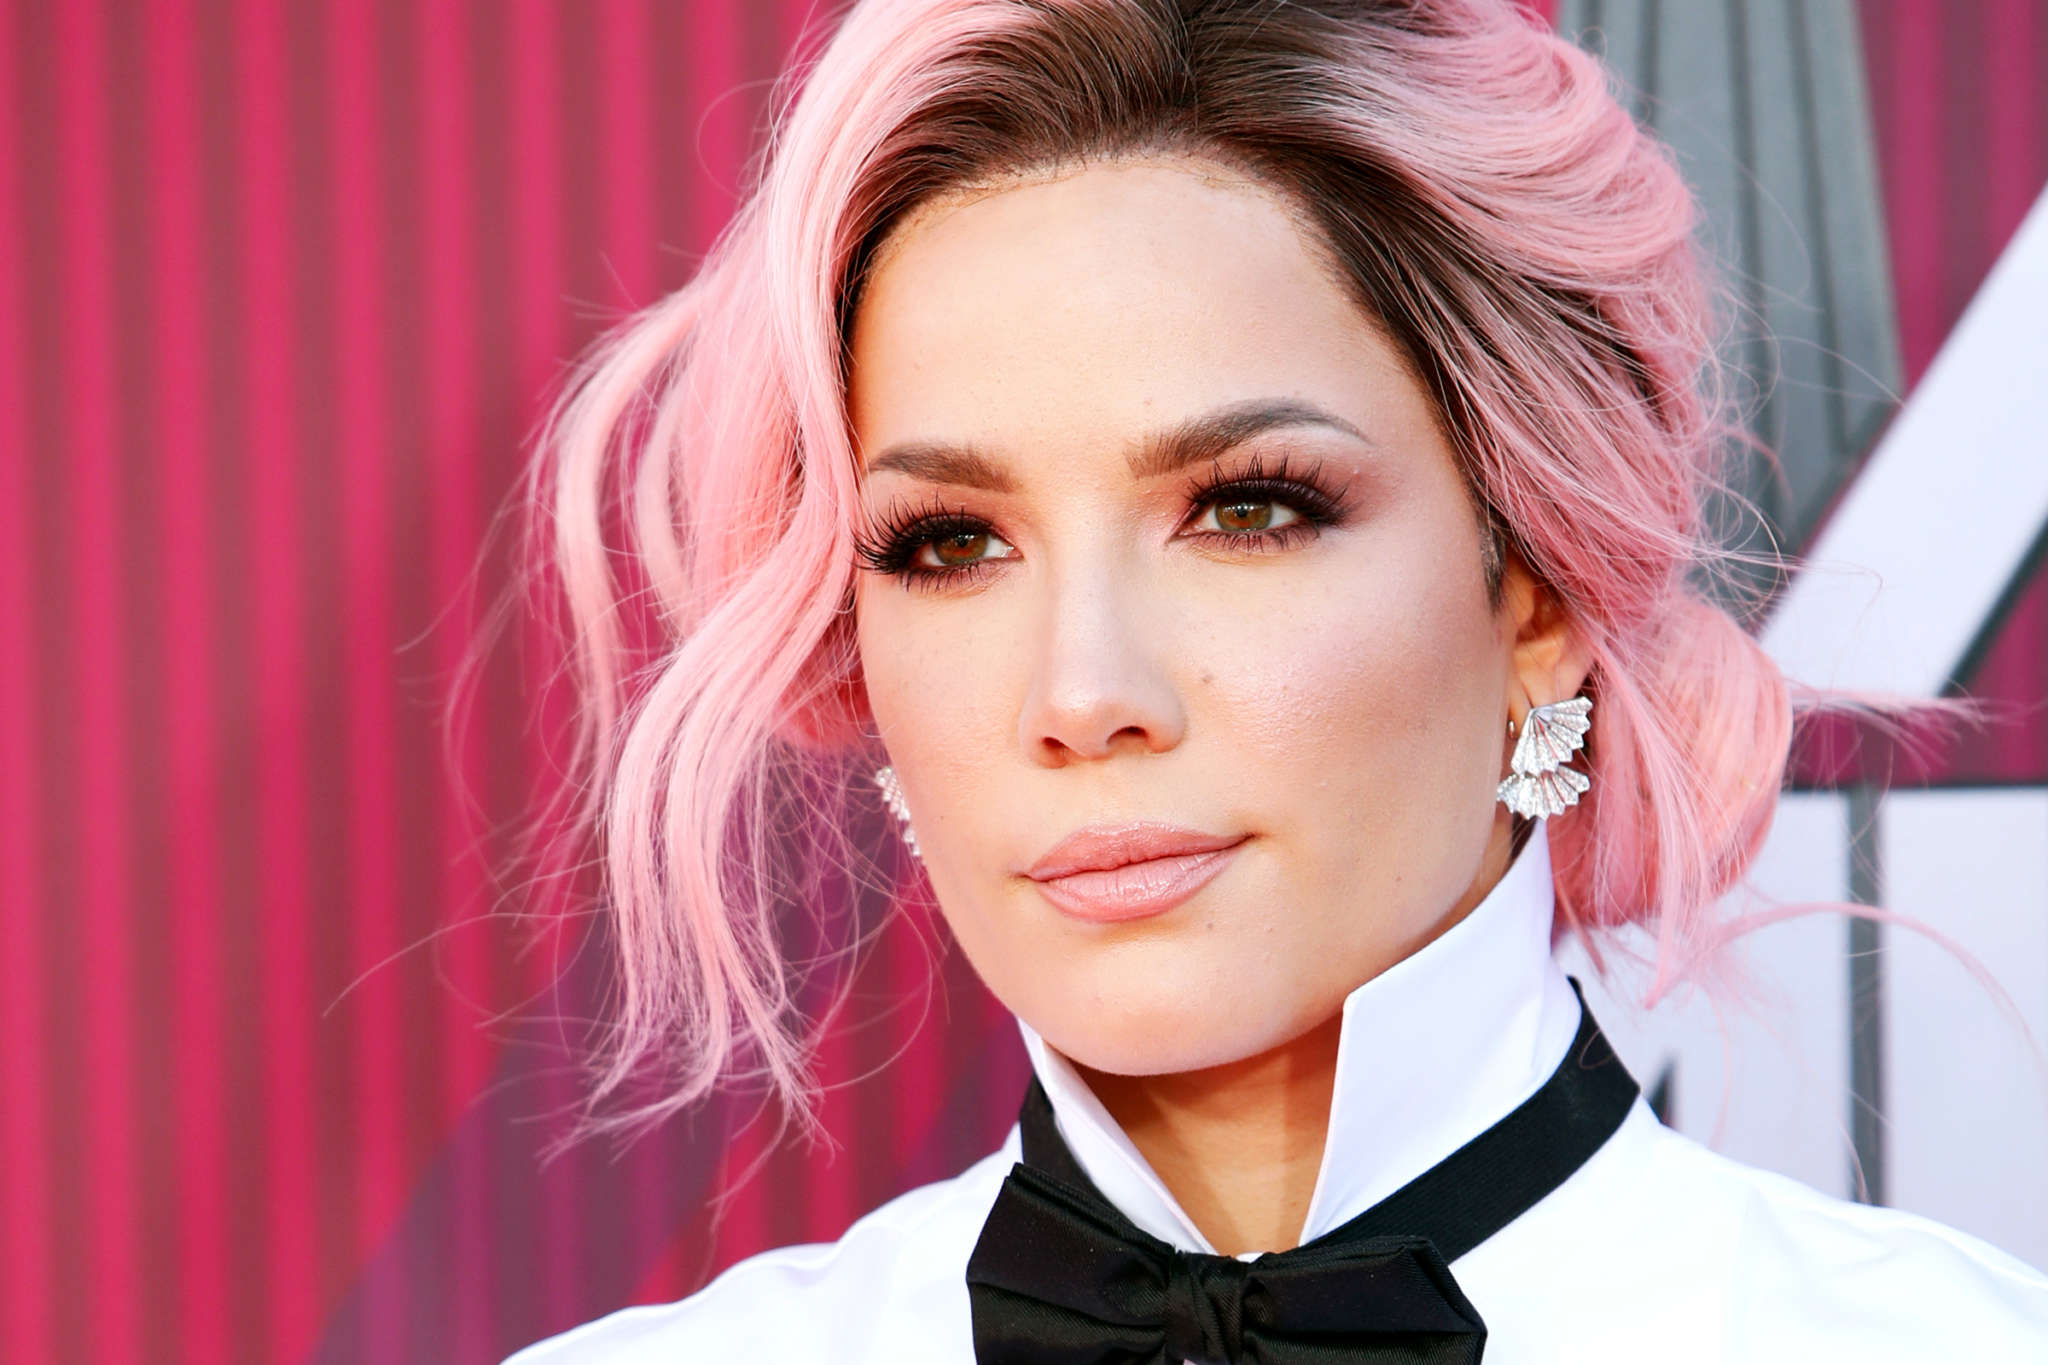 Halsey Slams Fans Who Ask To Take Pics With Her While Protesting – 'Don't Even Ask!'